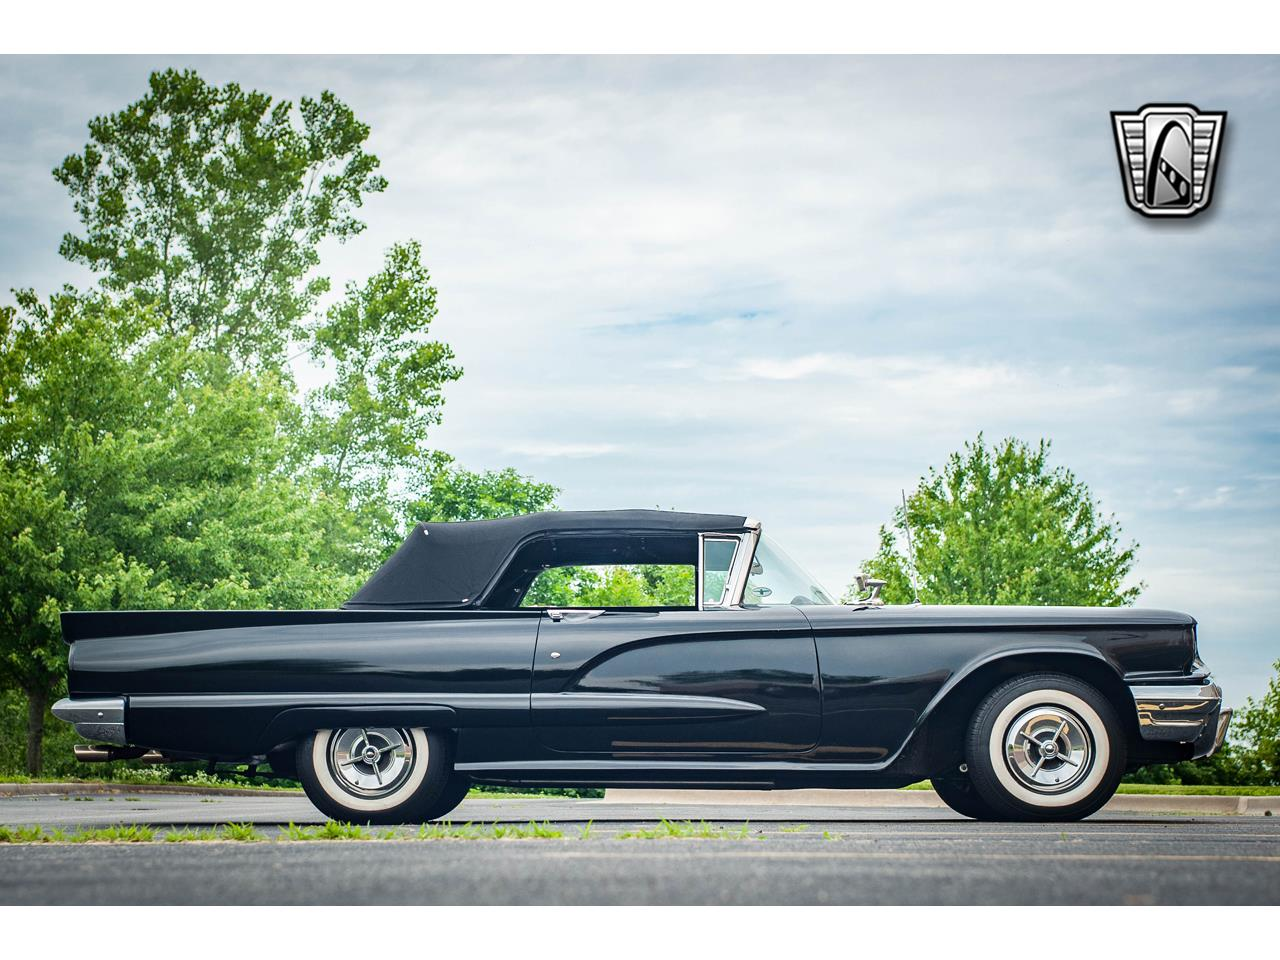 Large Picture of Classic 1960 Ford Thunderbird - $40,500.00 - QB9W